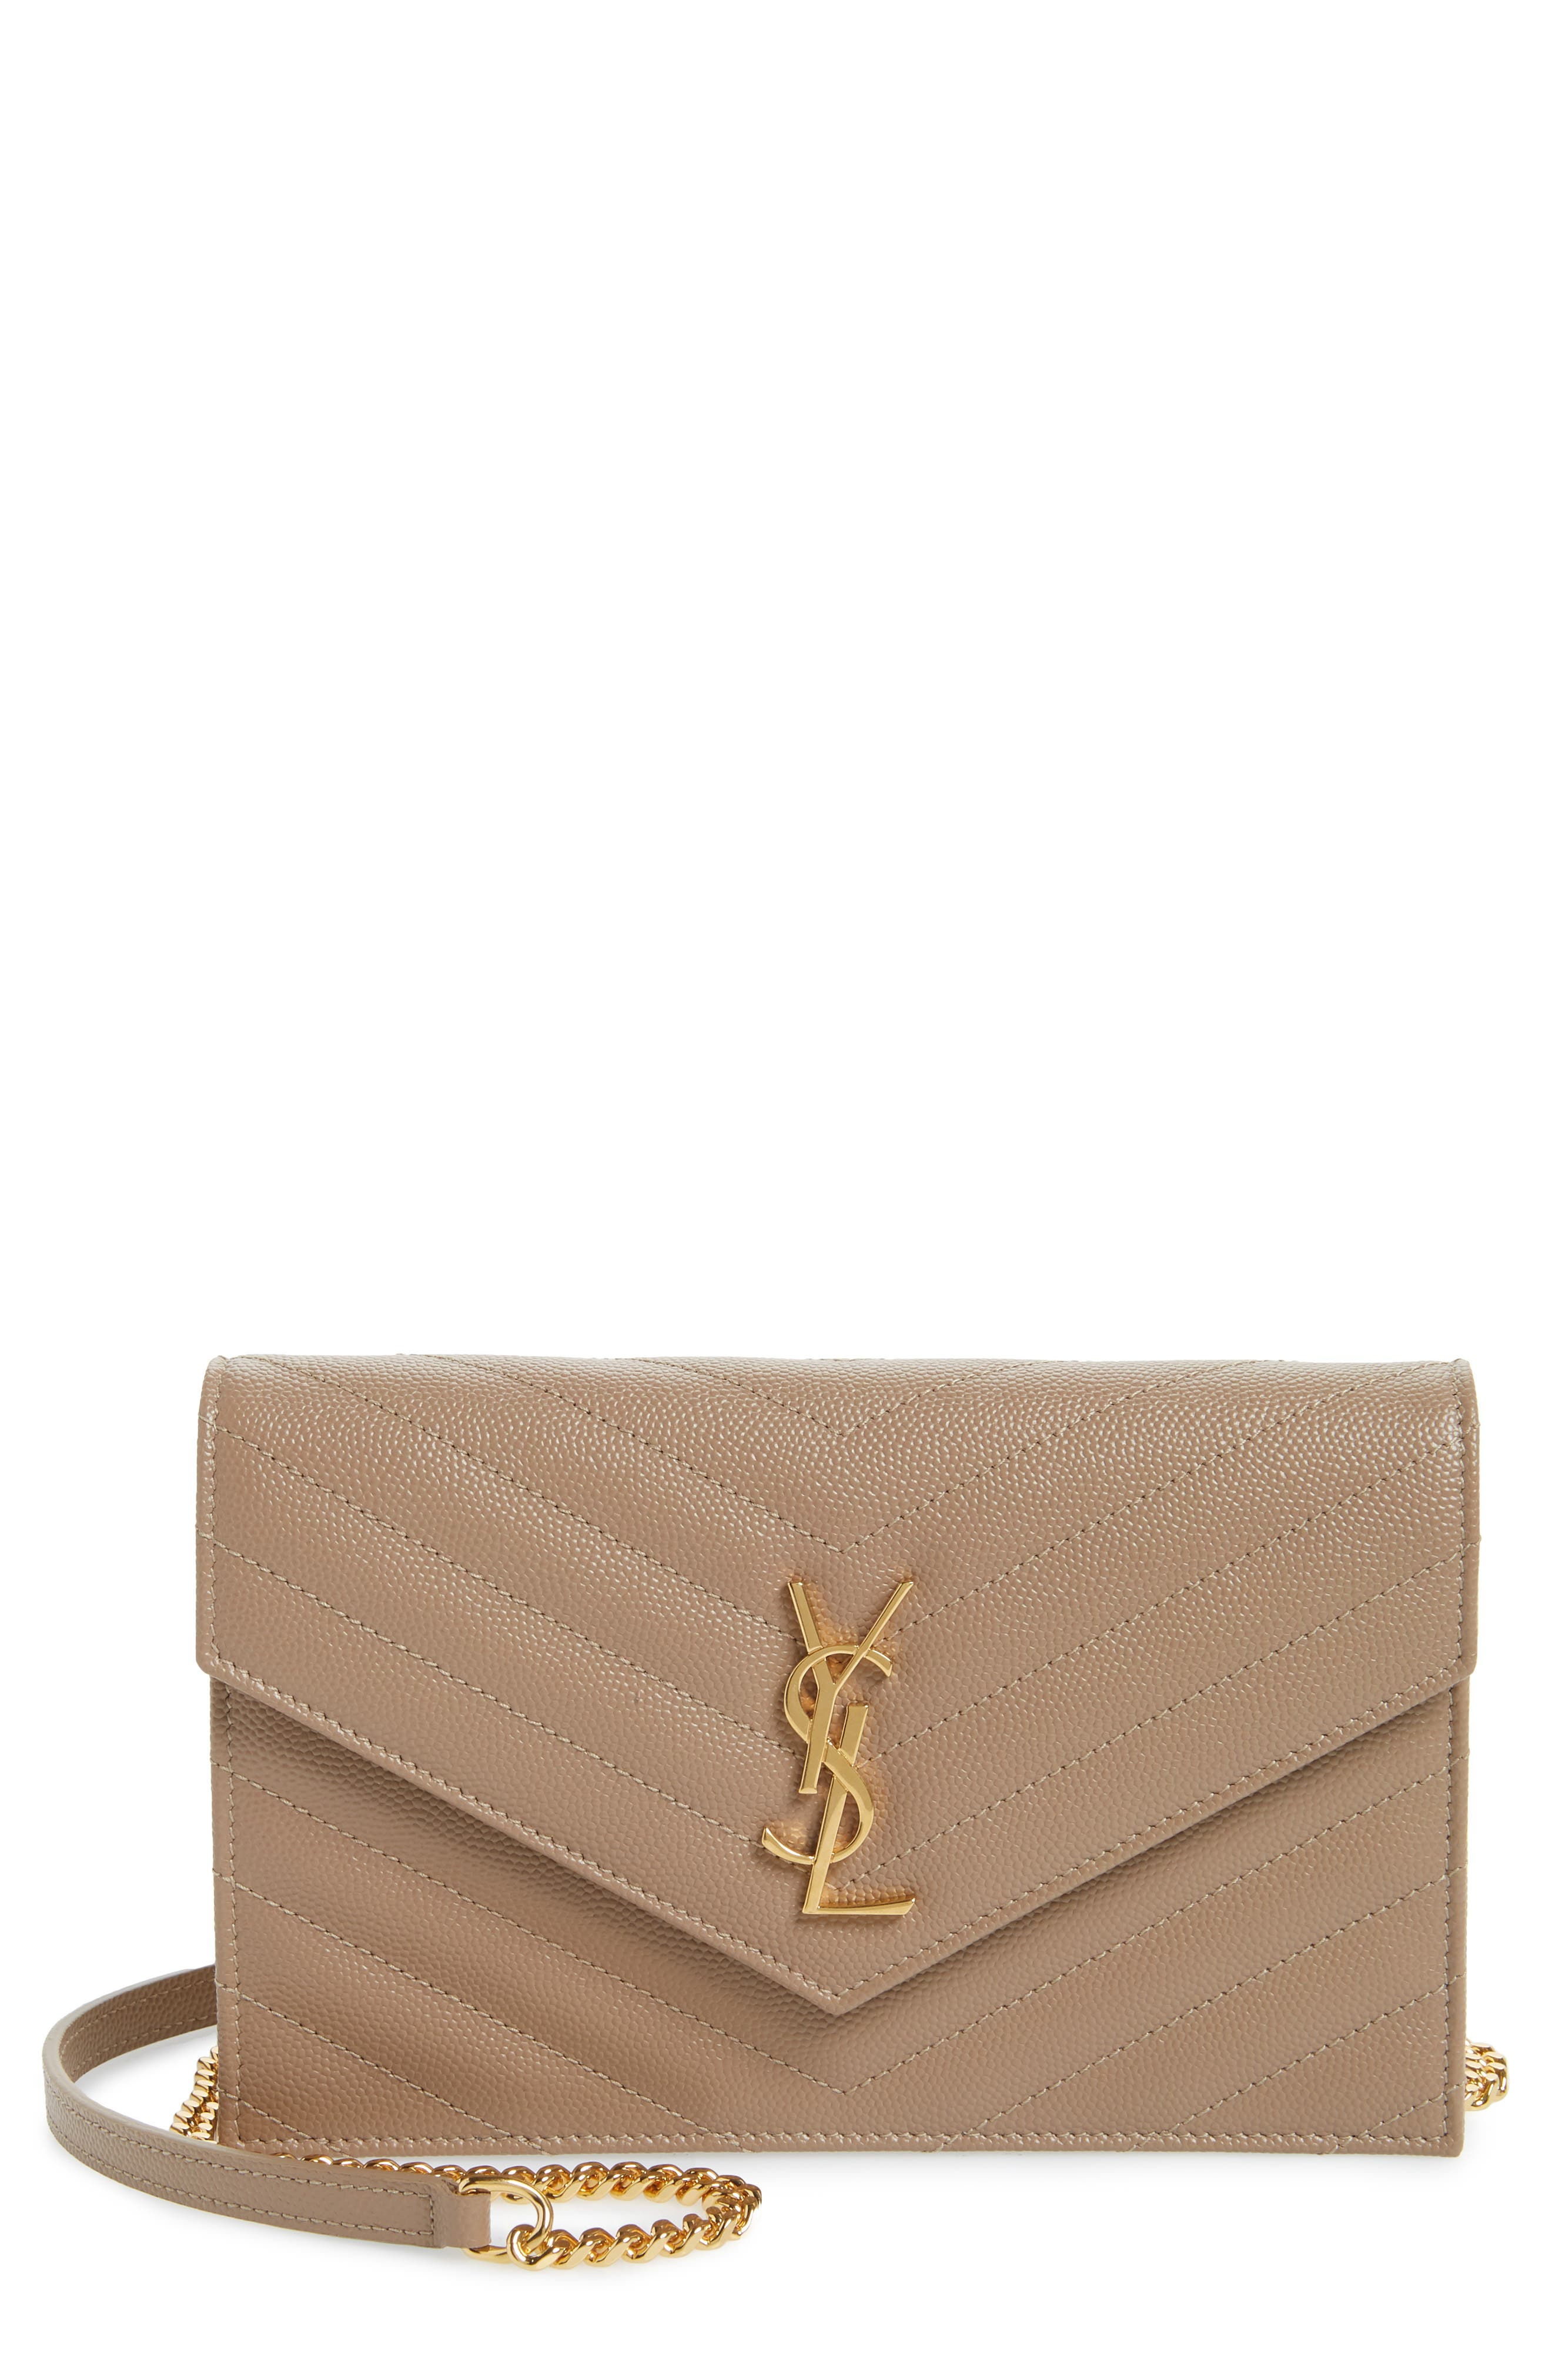 Saint Laurent 'Small Mono' Leather Wallet on a Chain